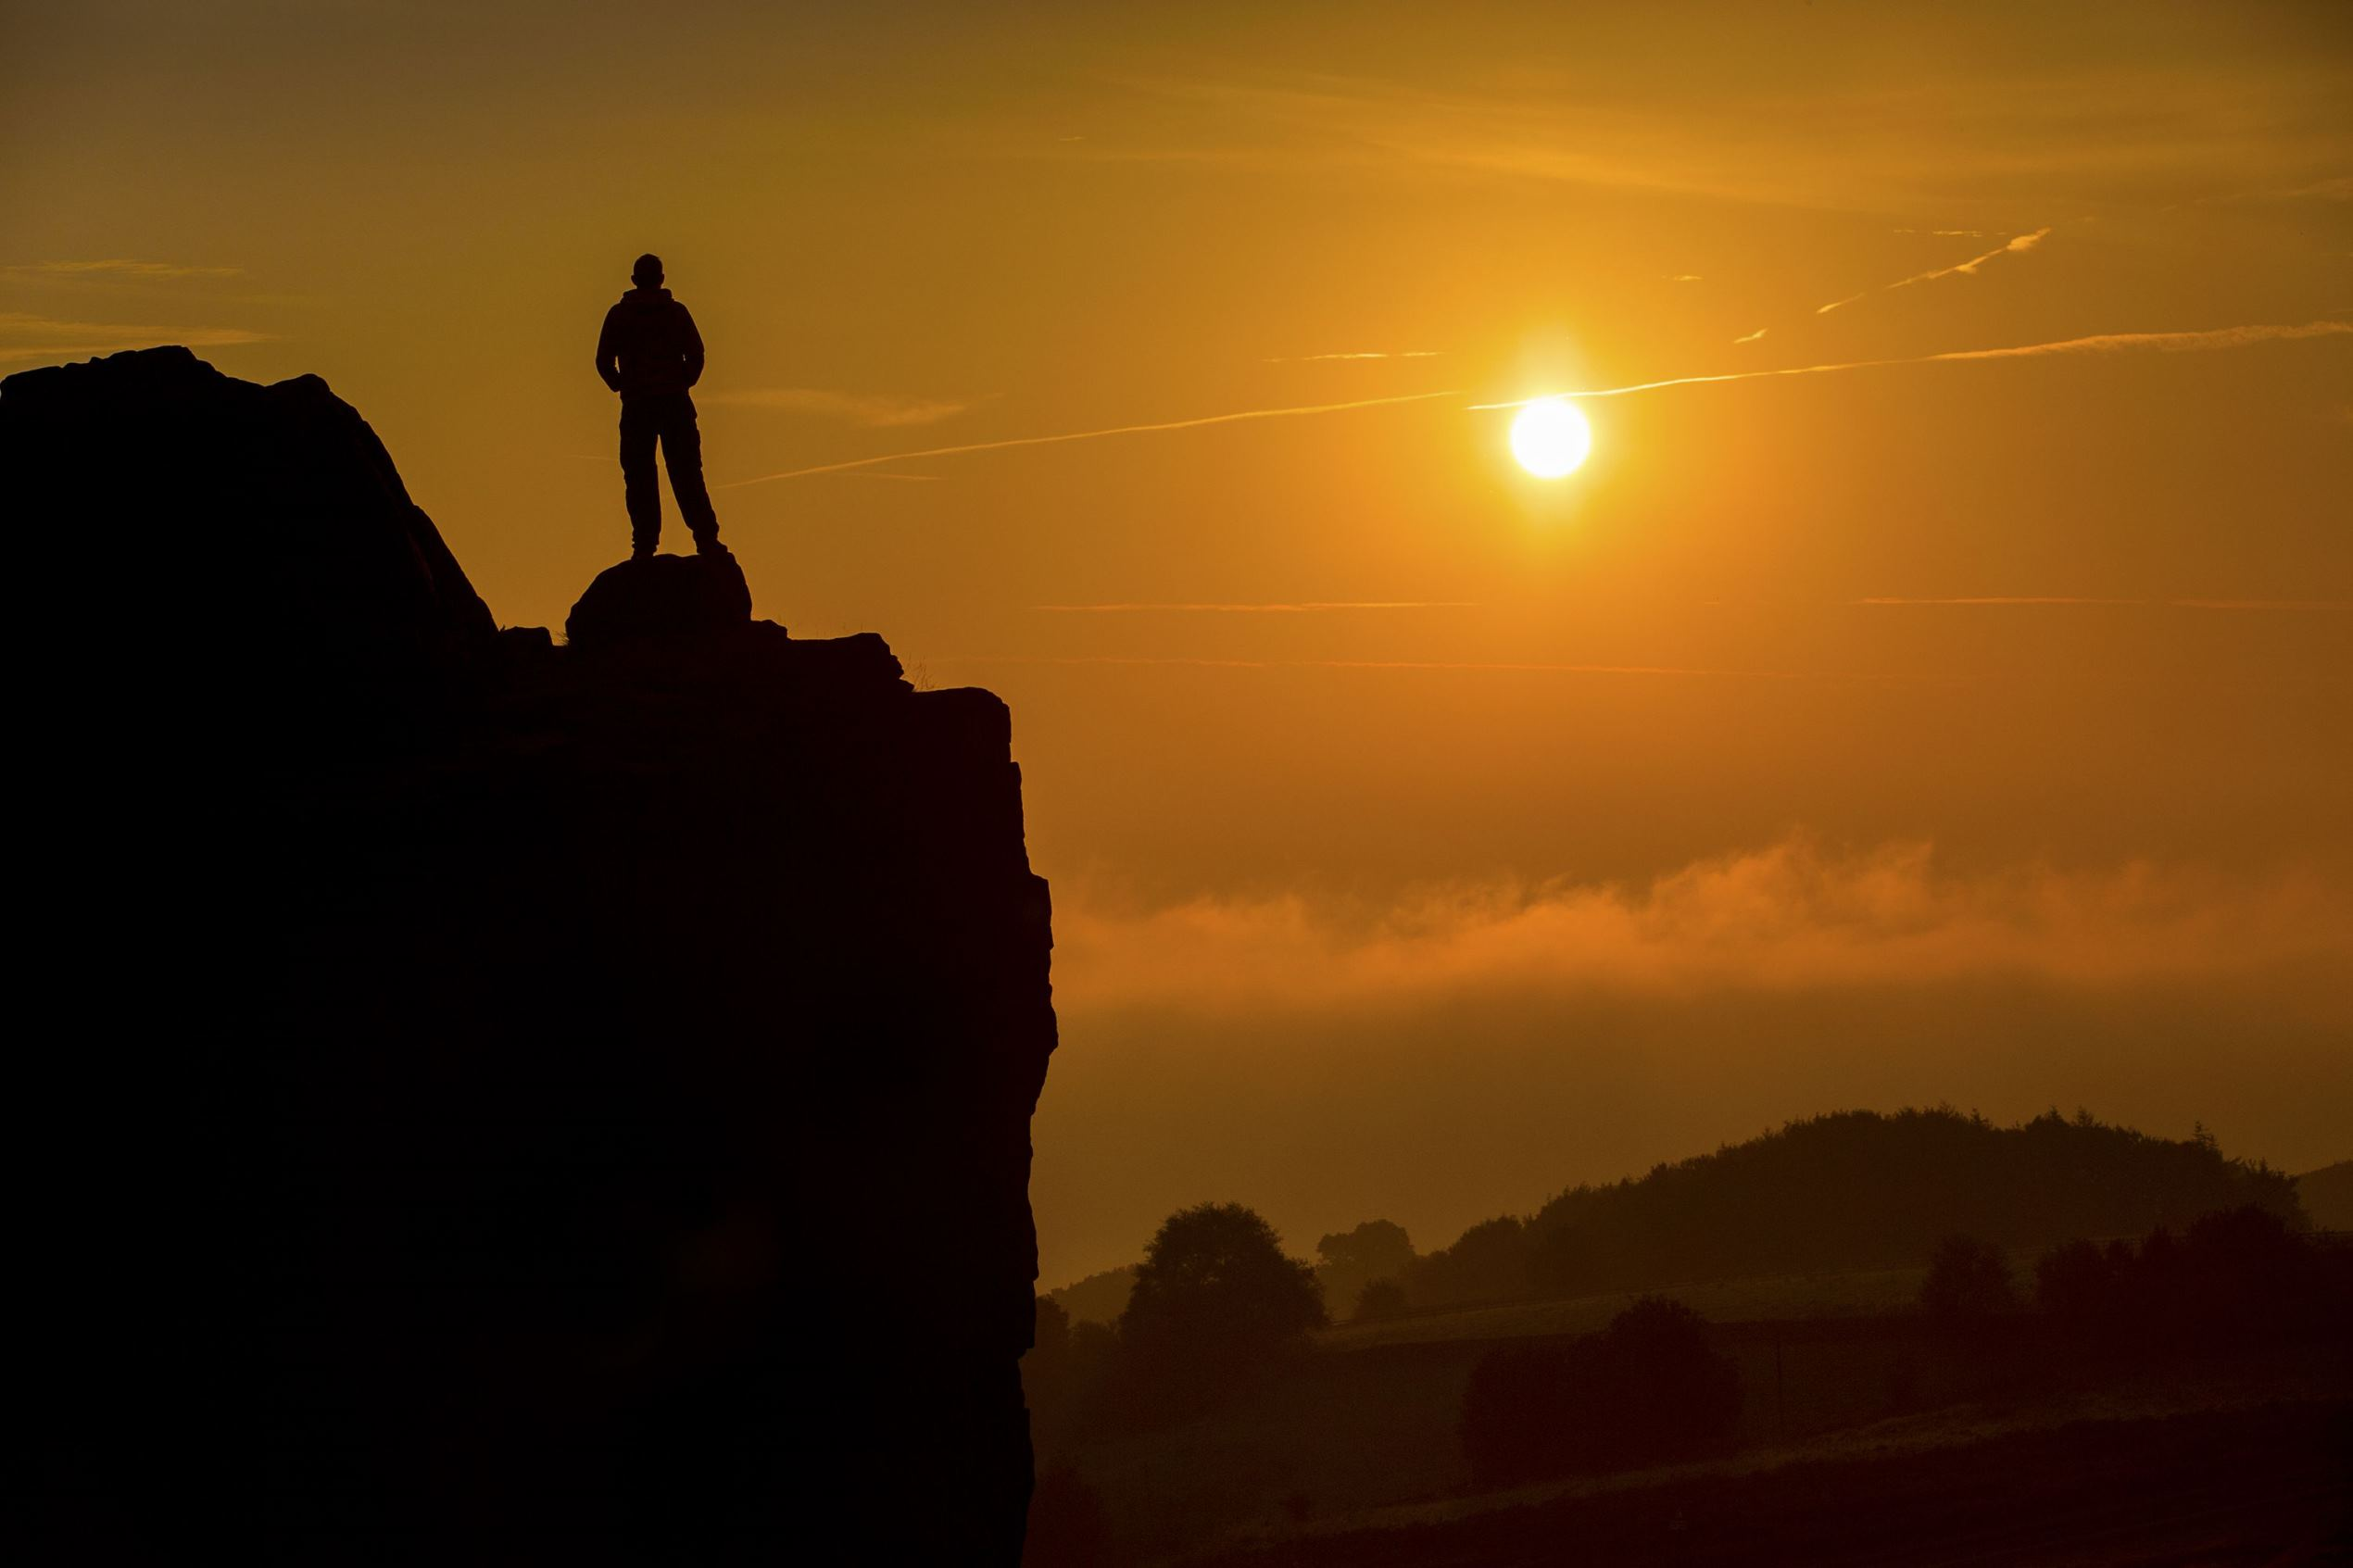 Слайд 8 из 86: Seasonal weather, UK - 13 Sep 2016 A man stands on top of the Cow & Calf rocks at Ilkley Moor 1,319ft above the fog covered town of Ilkley to watch this morning's sunrise on what is predicted to be the hottest day in September.